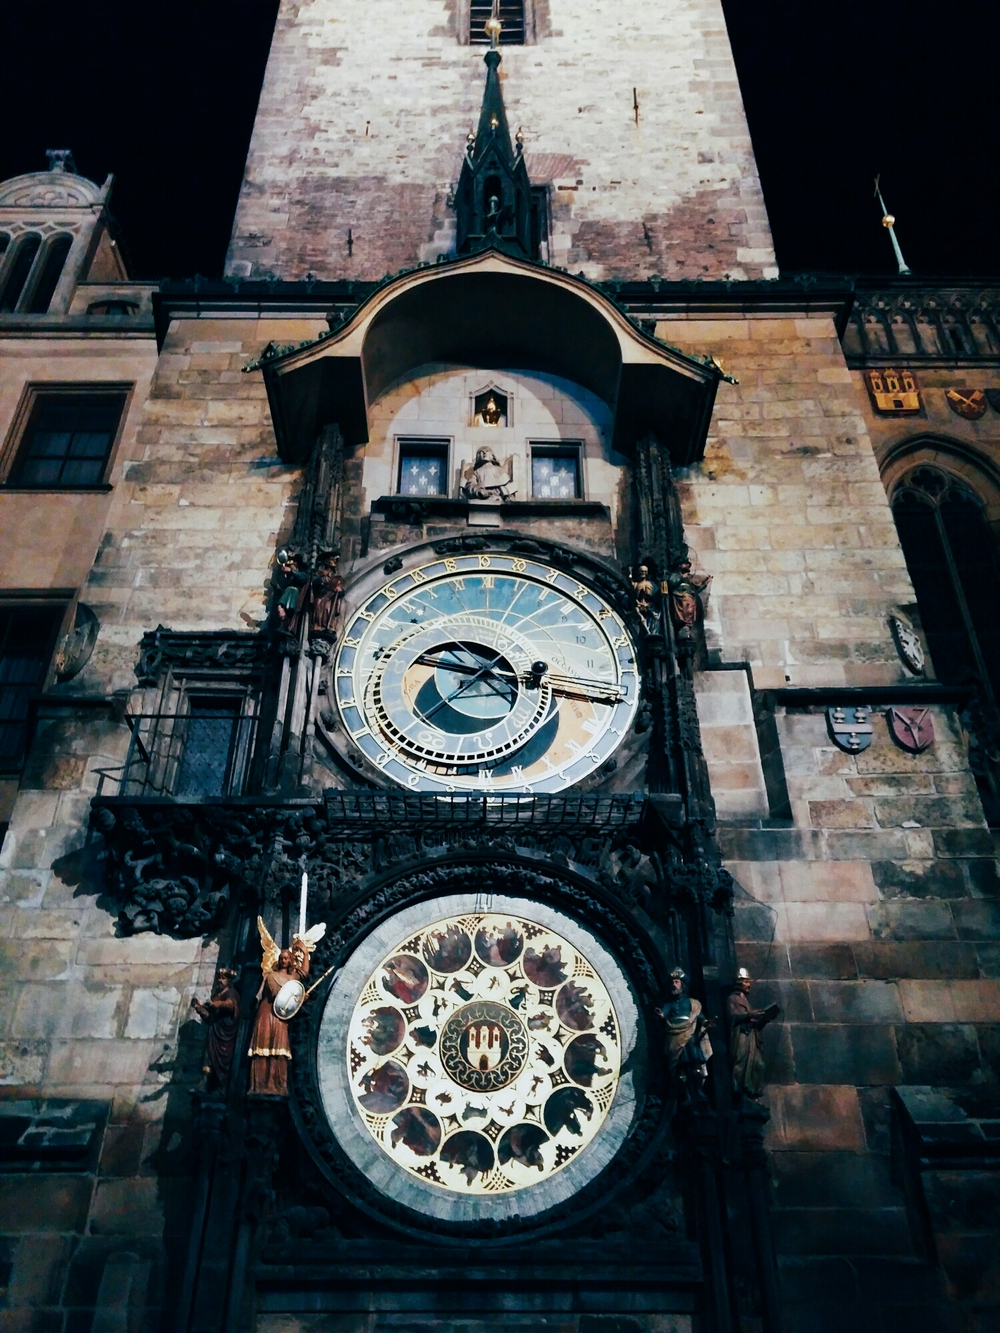 {Prague Astronomical Clock in Old Town Square.}